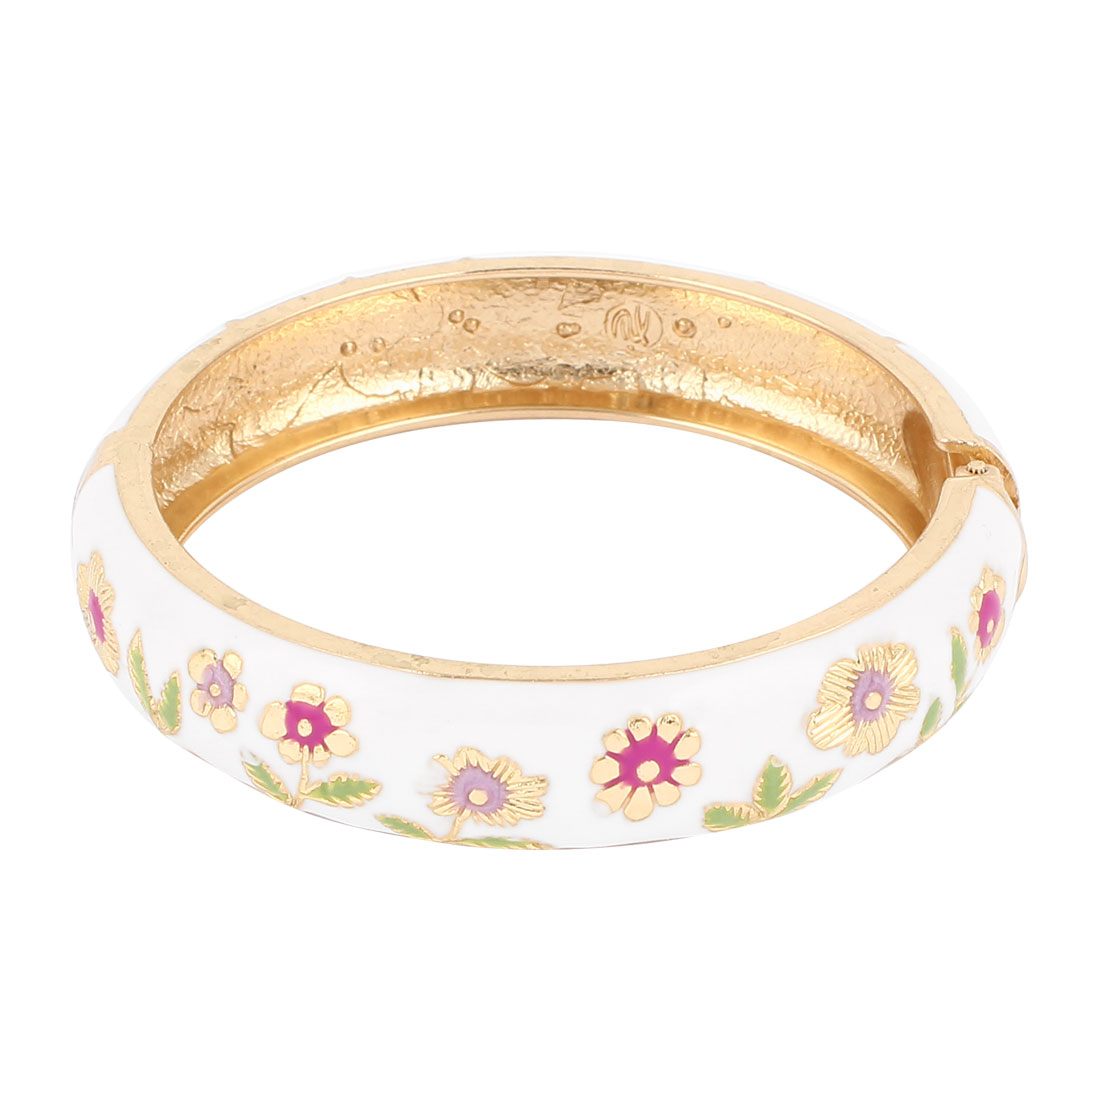 Lady 2.8-inch Dia White Hinge Wrist Enamel Bracelet Bangle